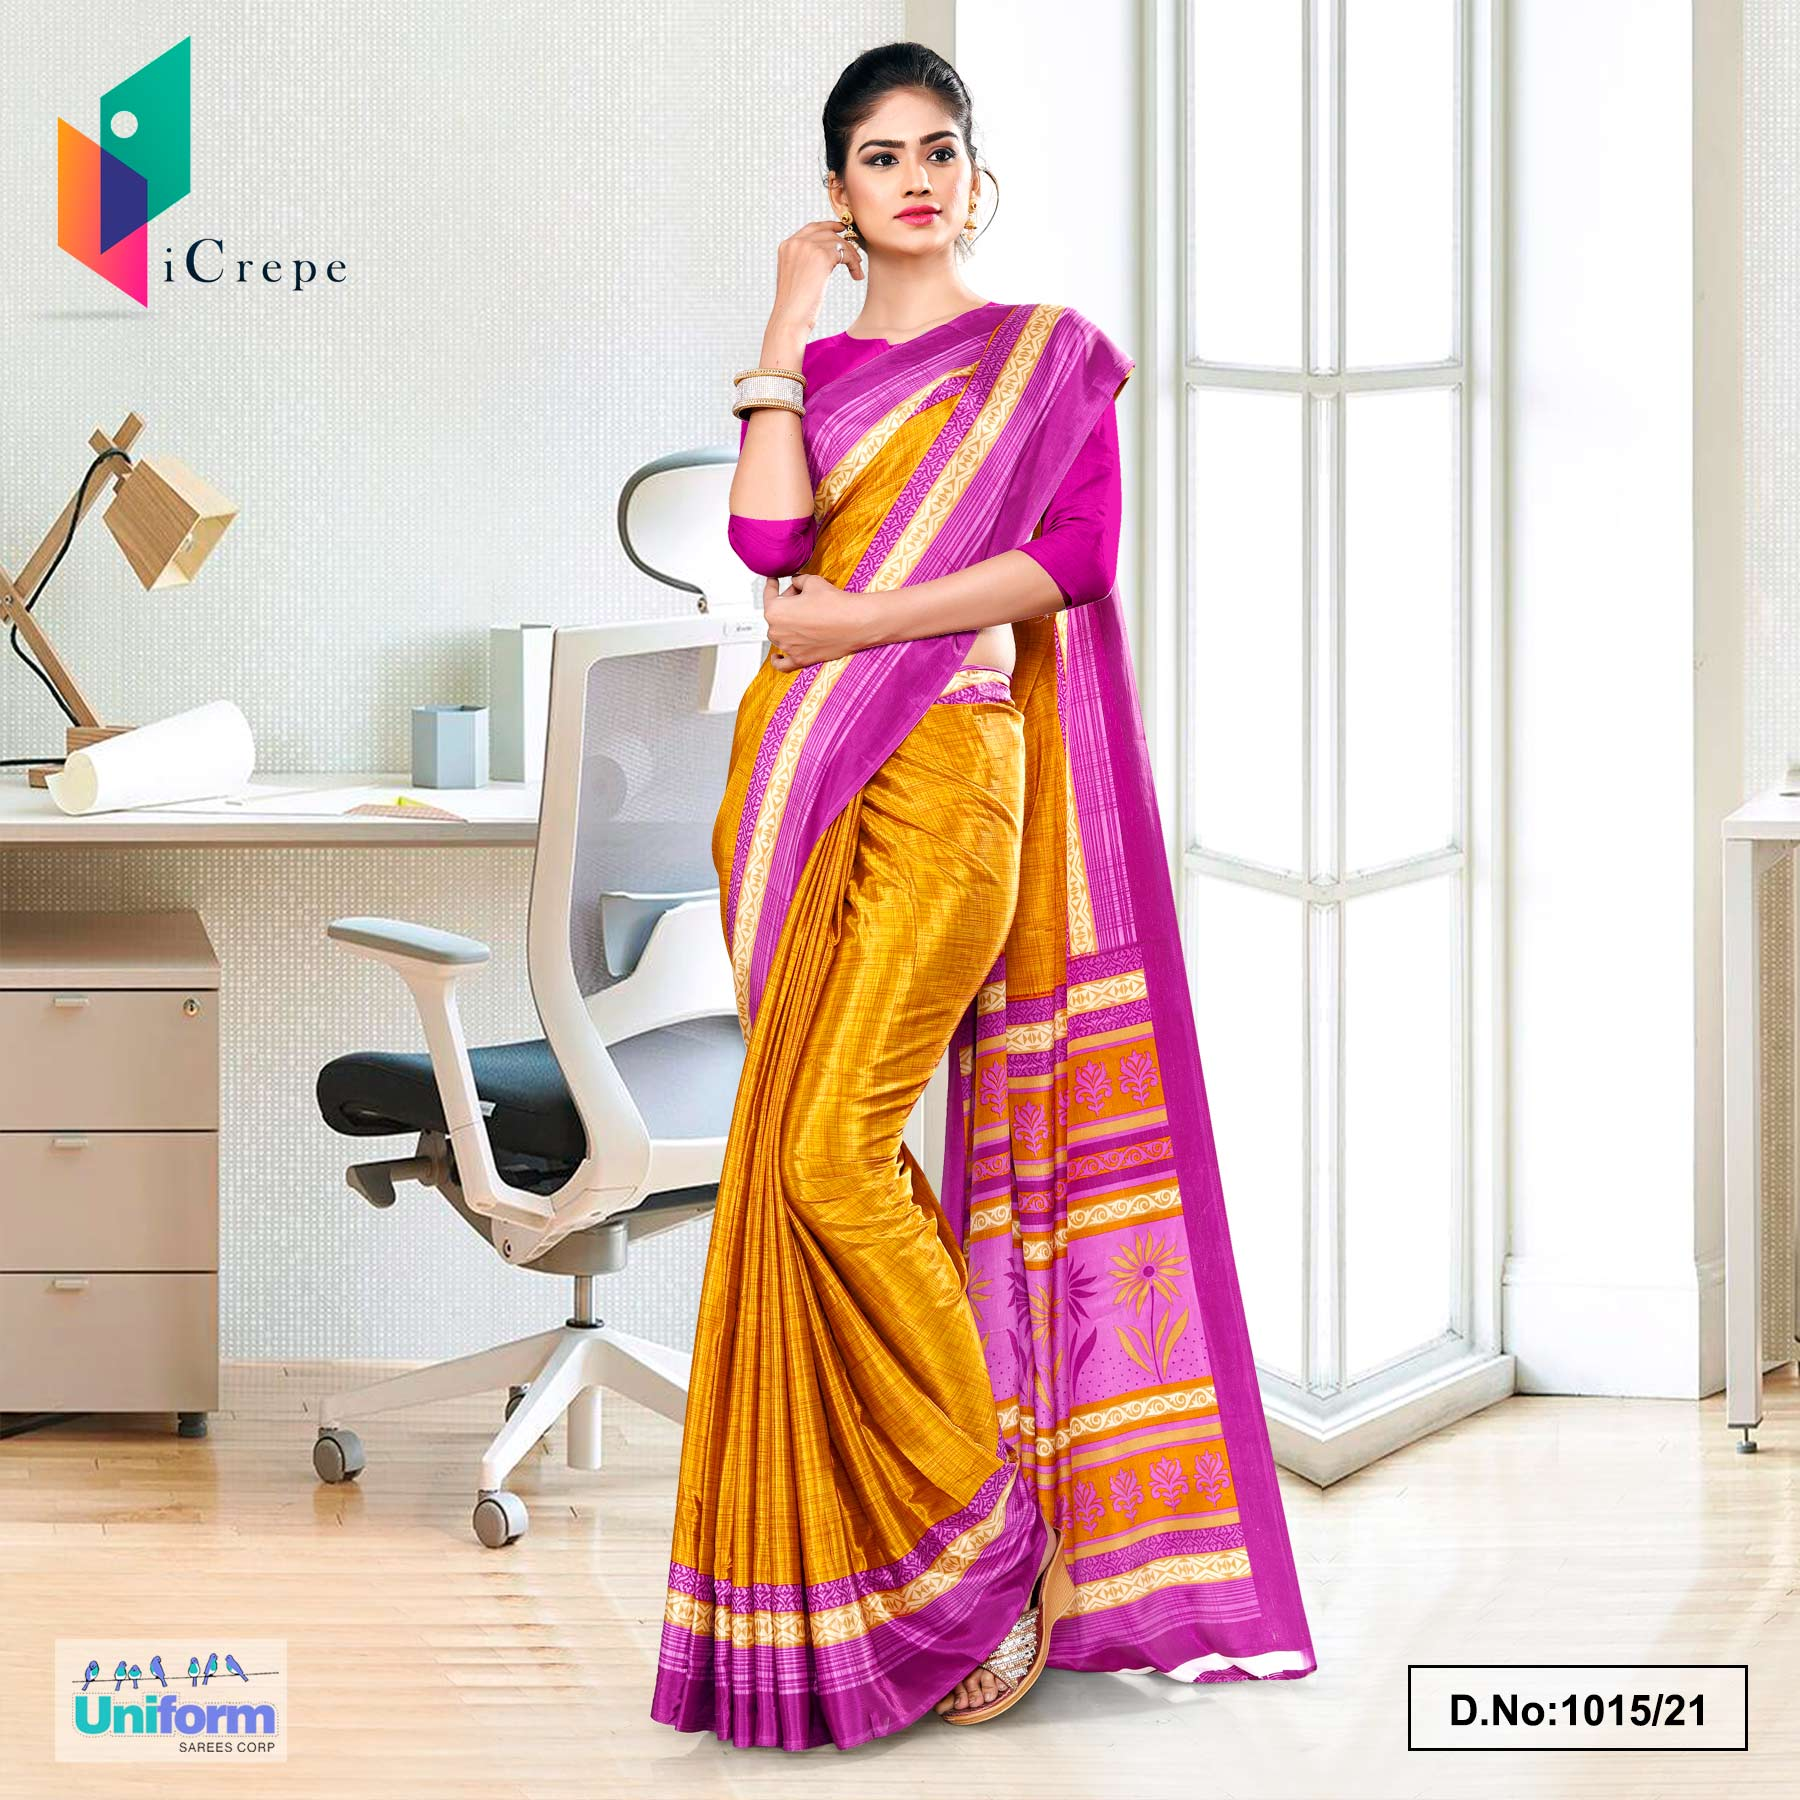 Yellow Lavender Premium Italian Silk Crepe Saree for Workers Uniform Sarees